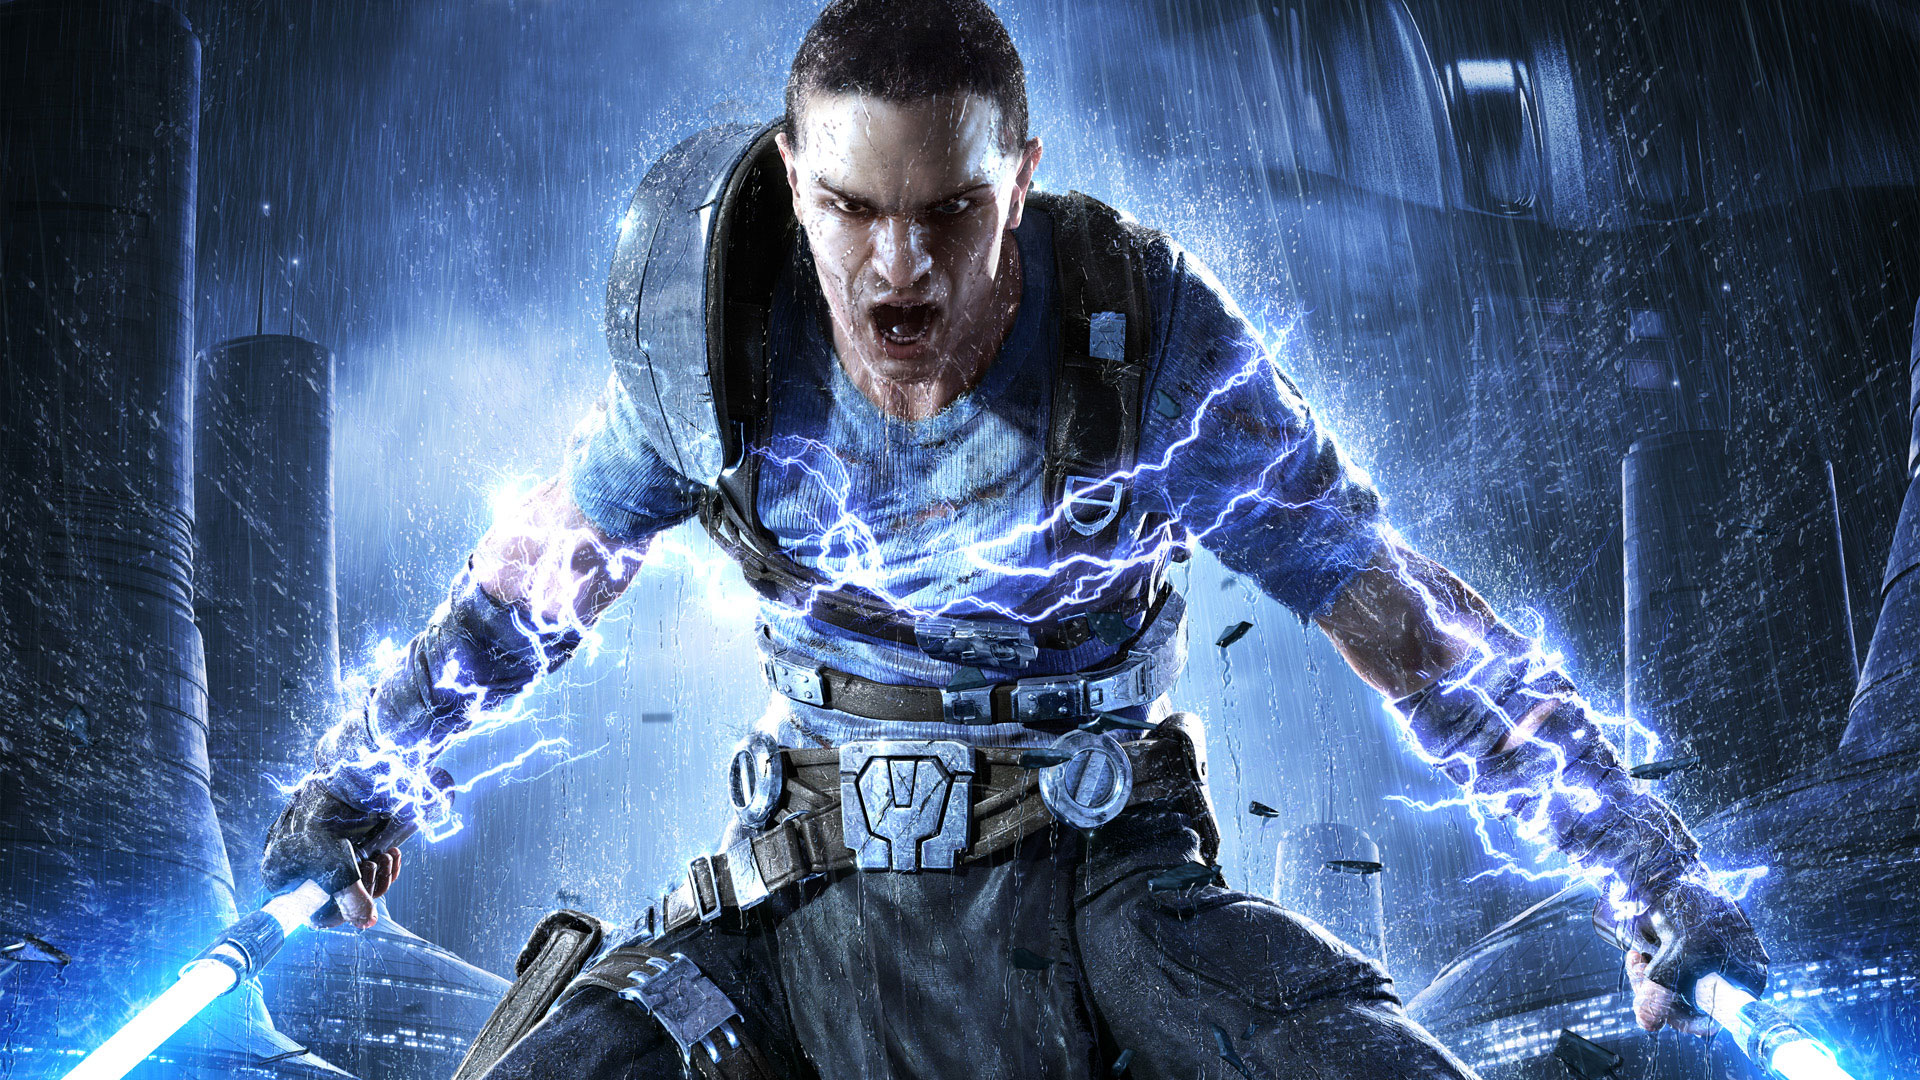 Star Wars The Force Unleashed 2 Wallpapers in HD 1920x1080